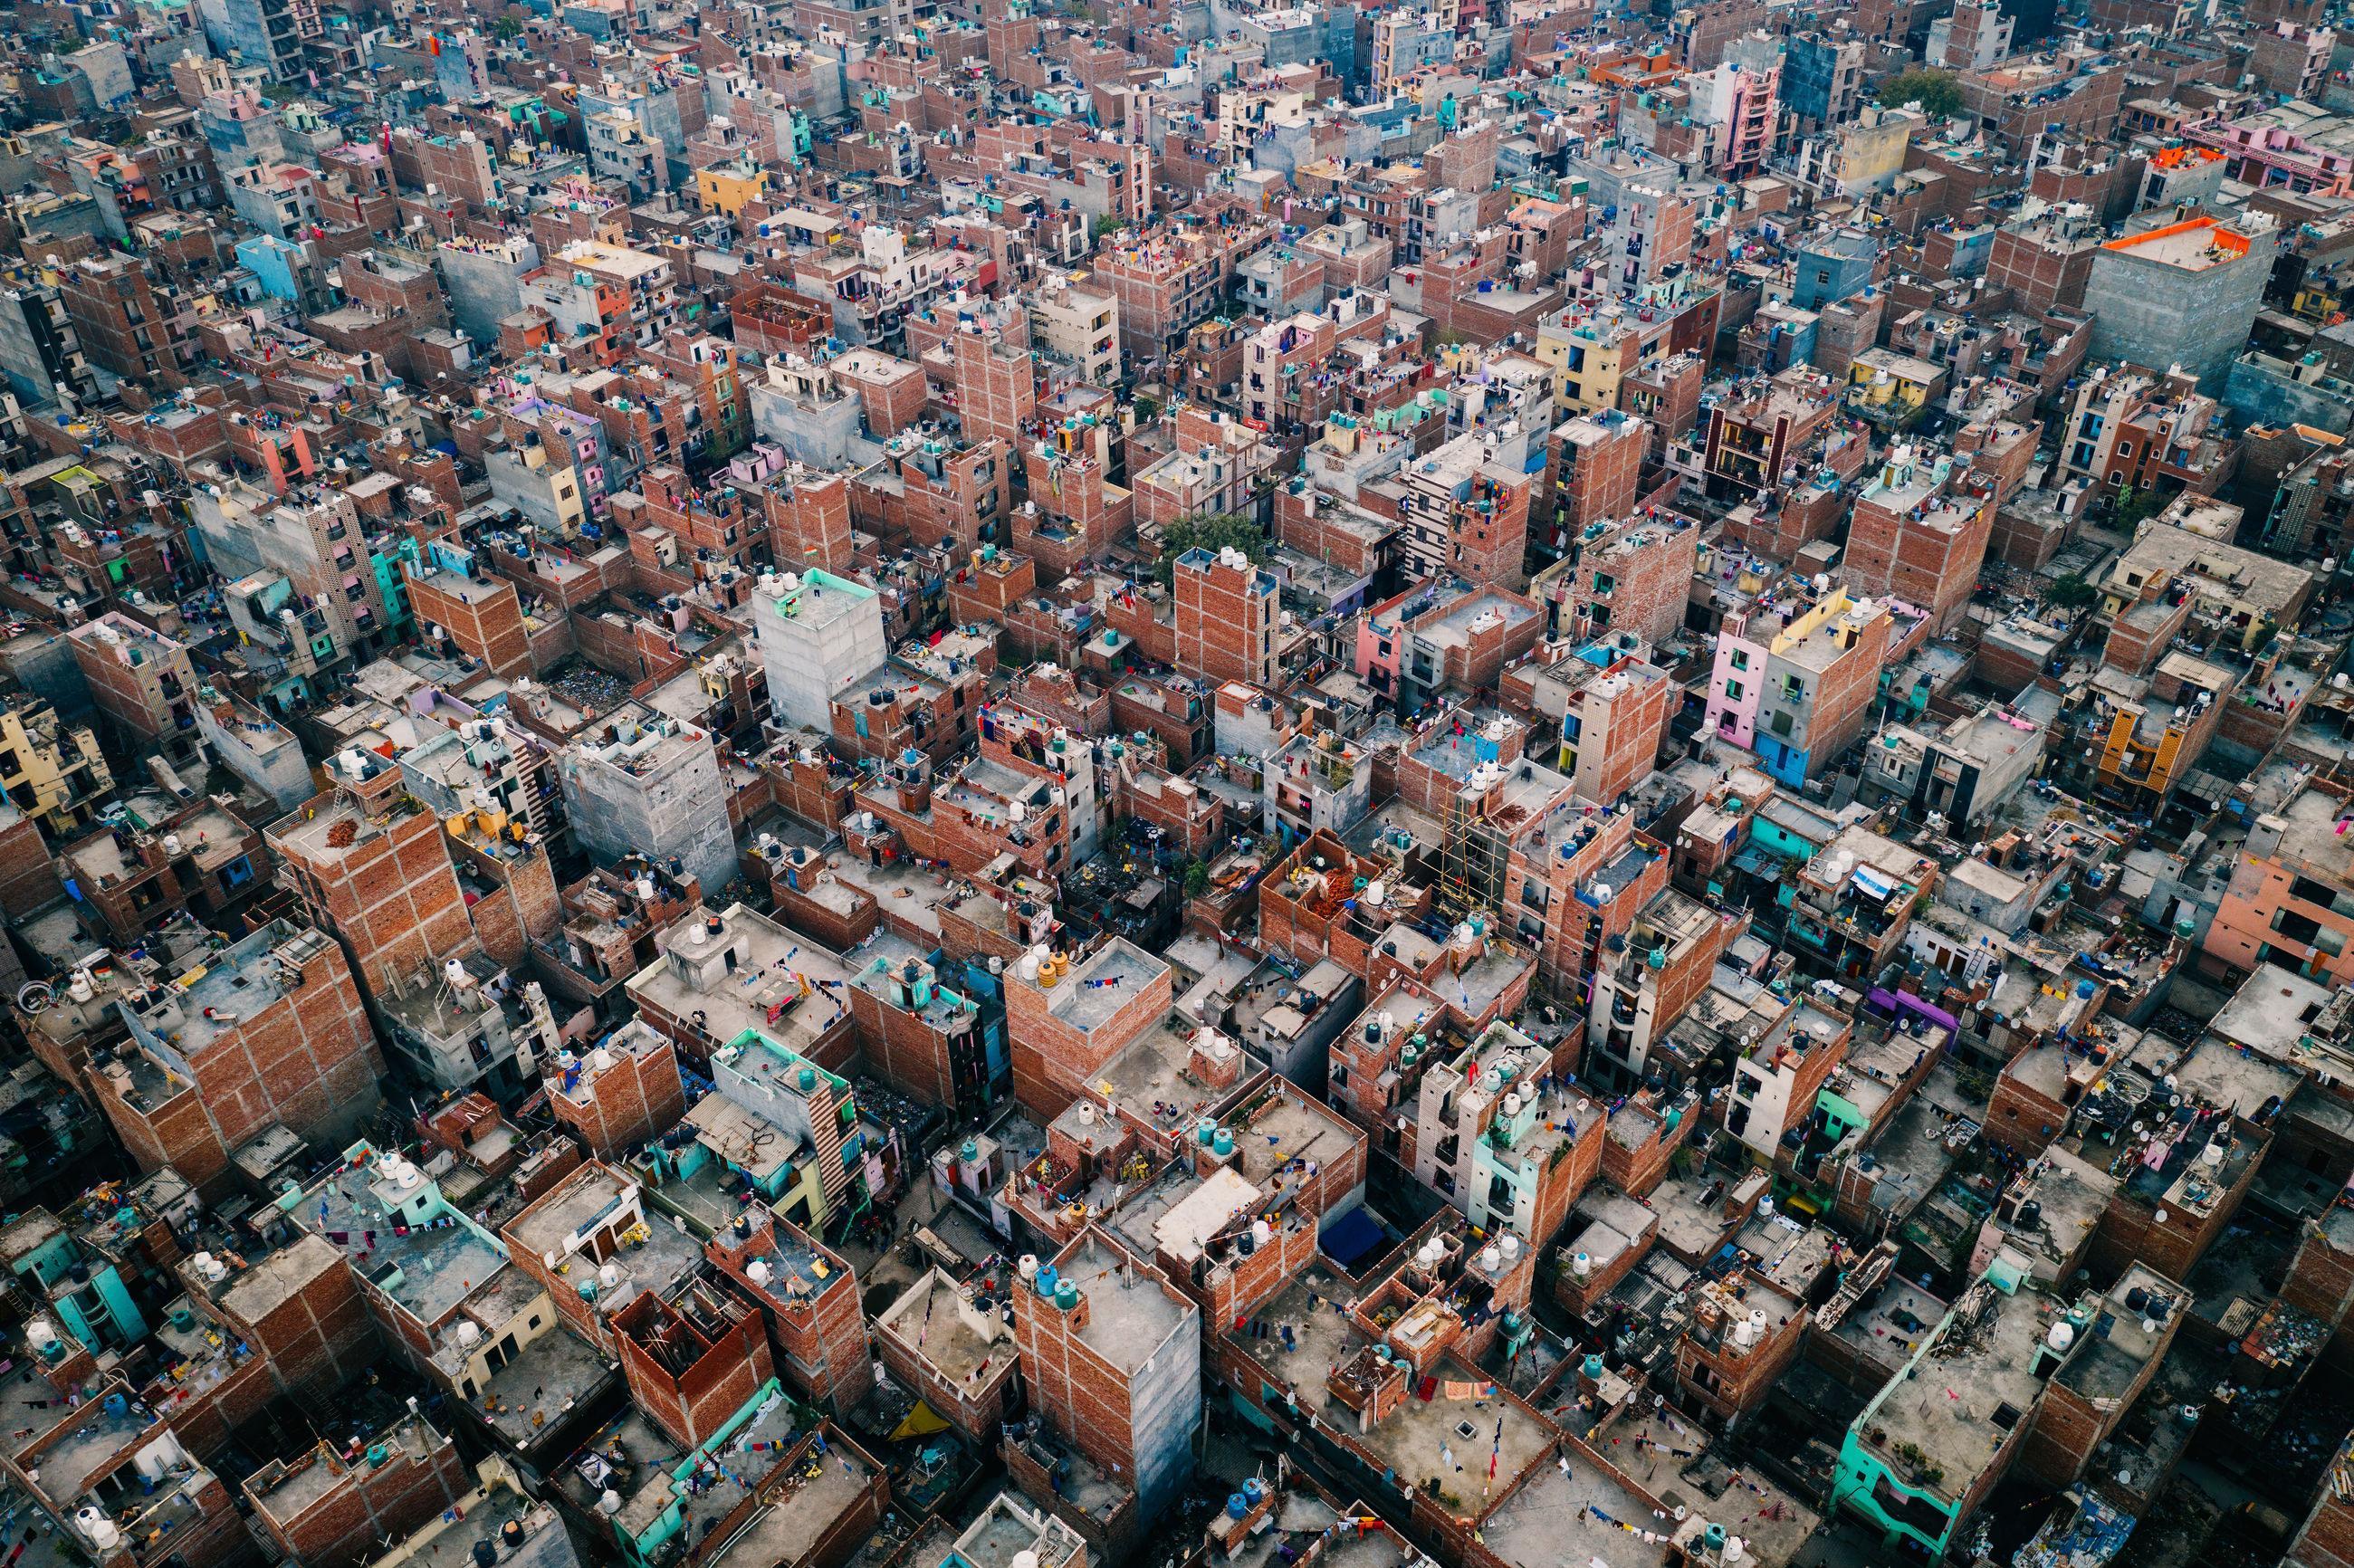 architecture, building exterior, built structure, city, cityscape, crowd, high angle view, residential district, aerial view, crowded, building, backgrounds, full frame, day, travel destinations, city life, outdoors, nature, community, townscape